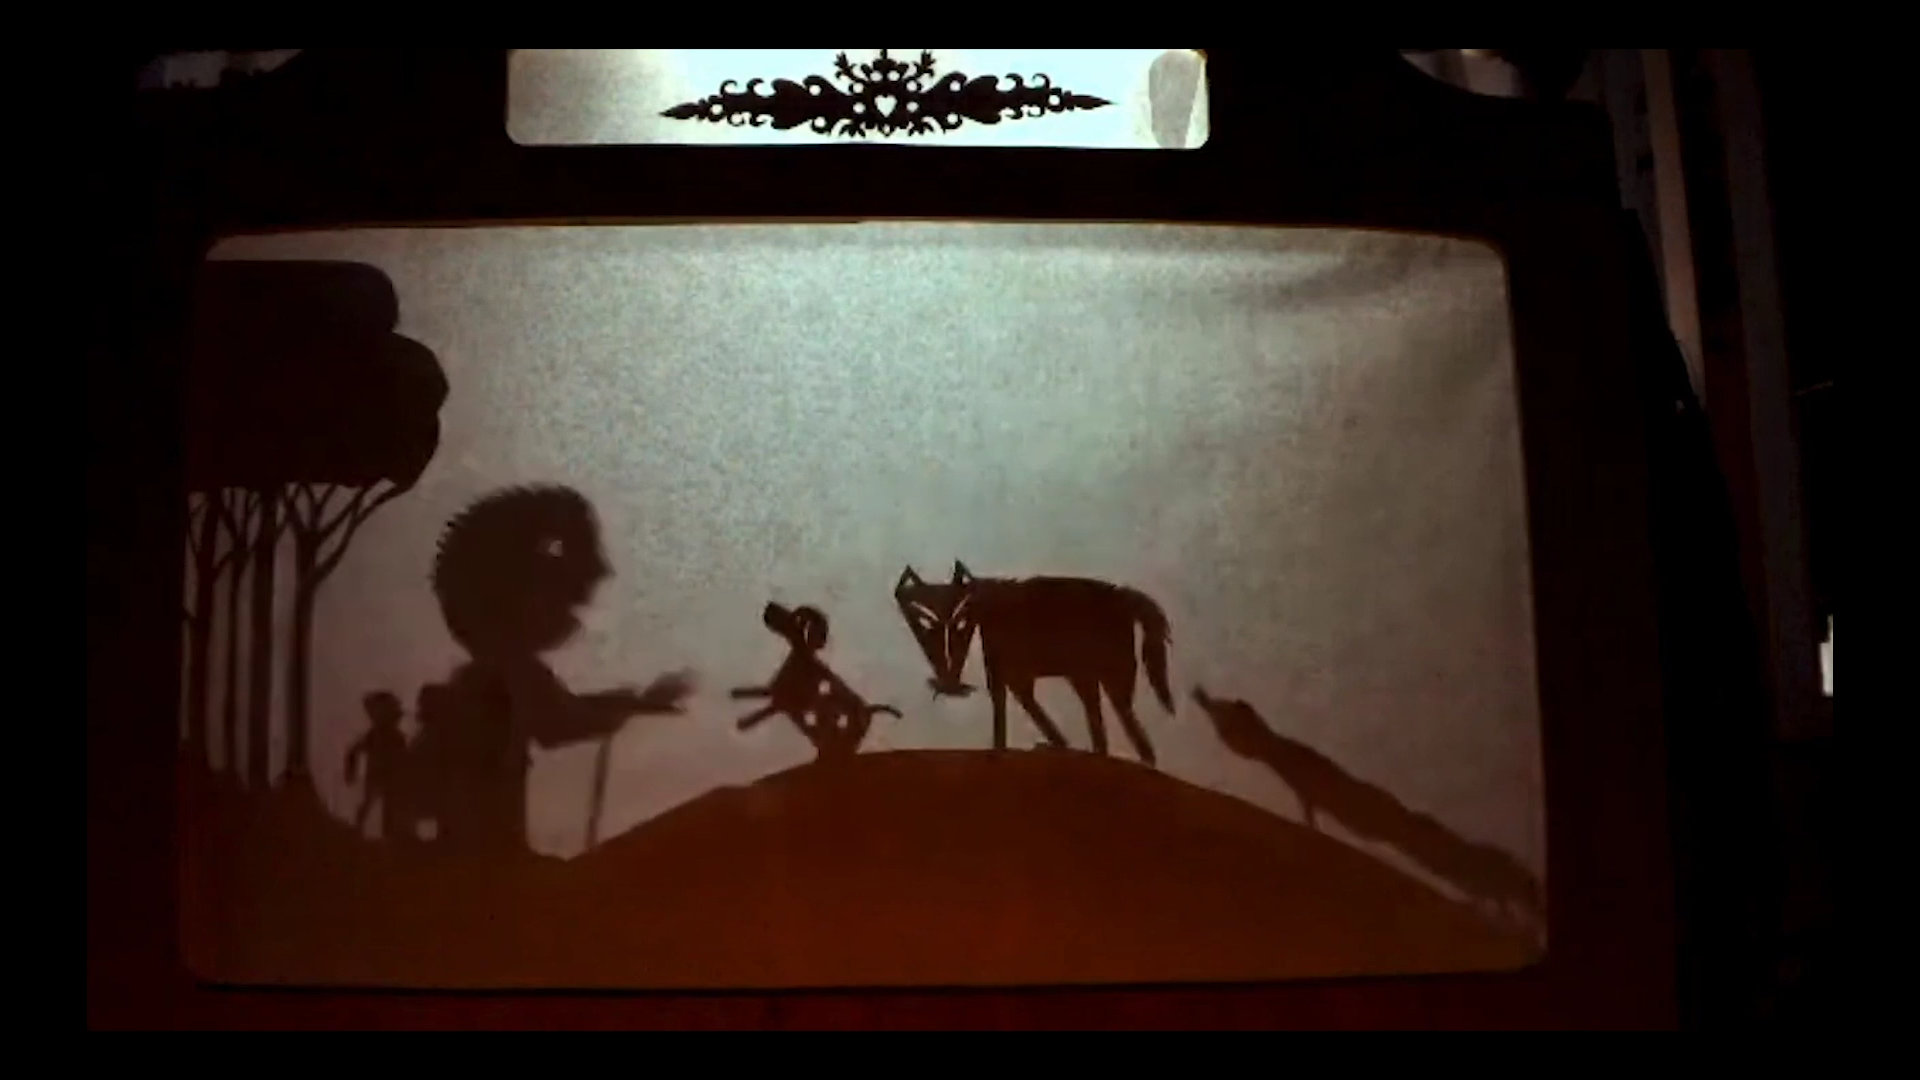 a screenshot from a shadow puppet performance available on the la mama patreon